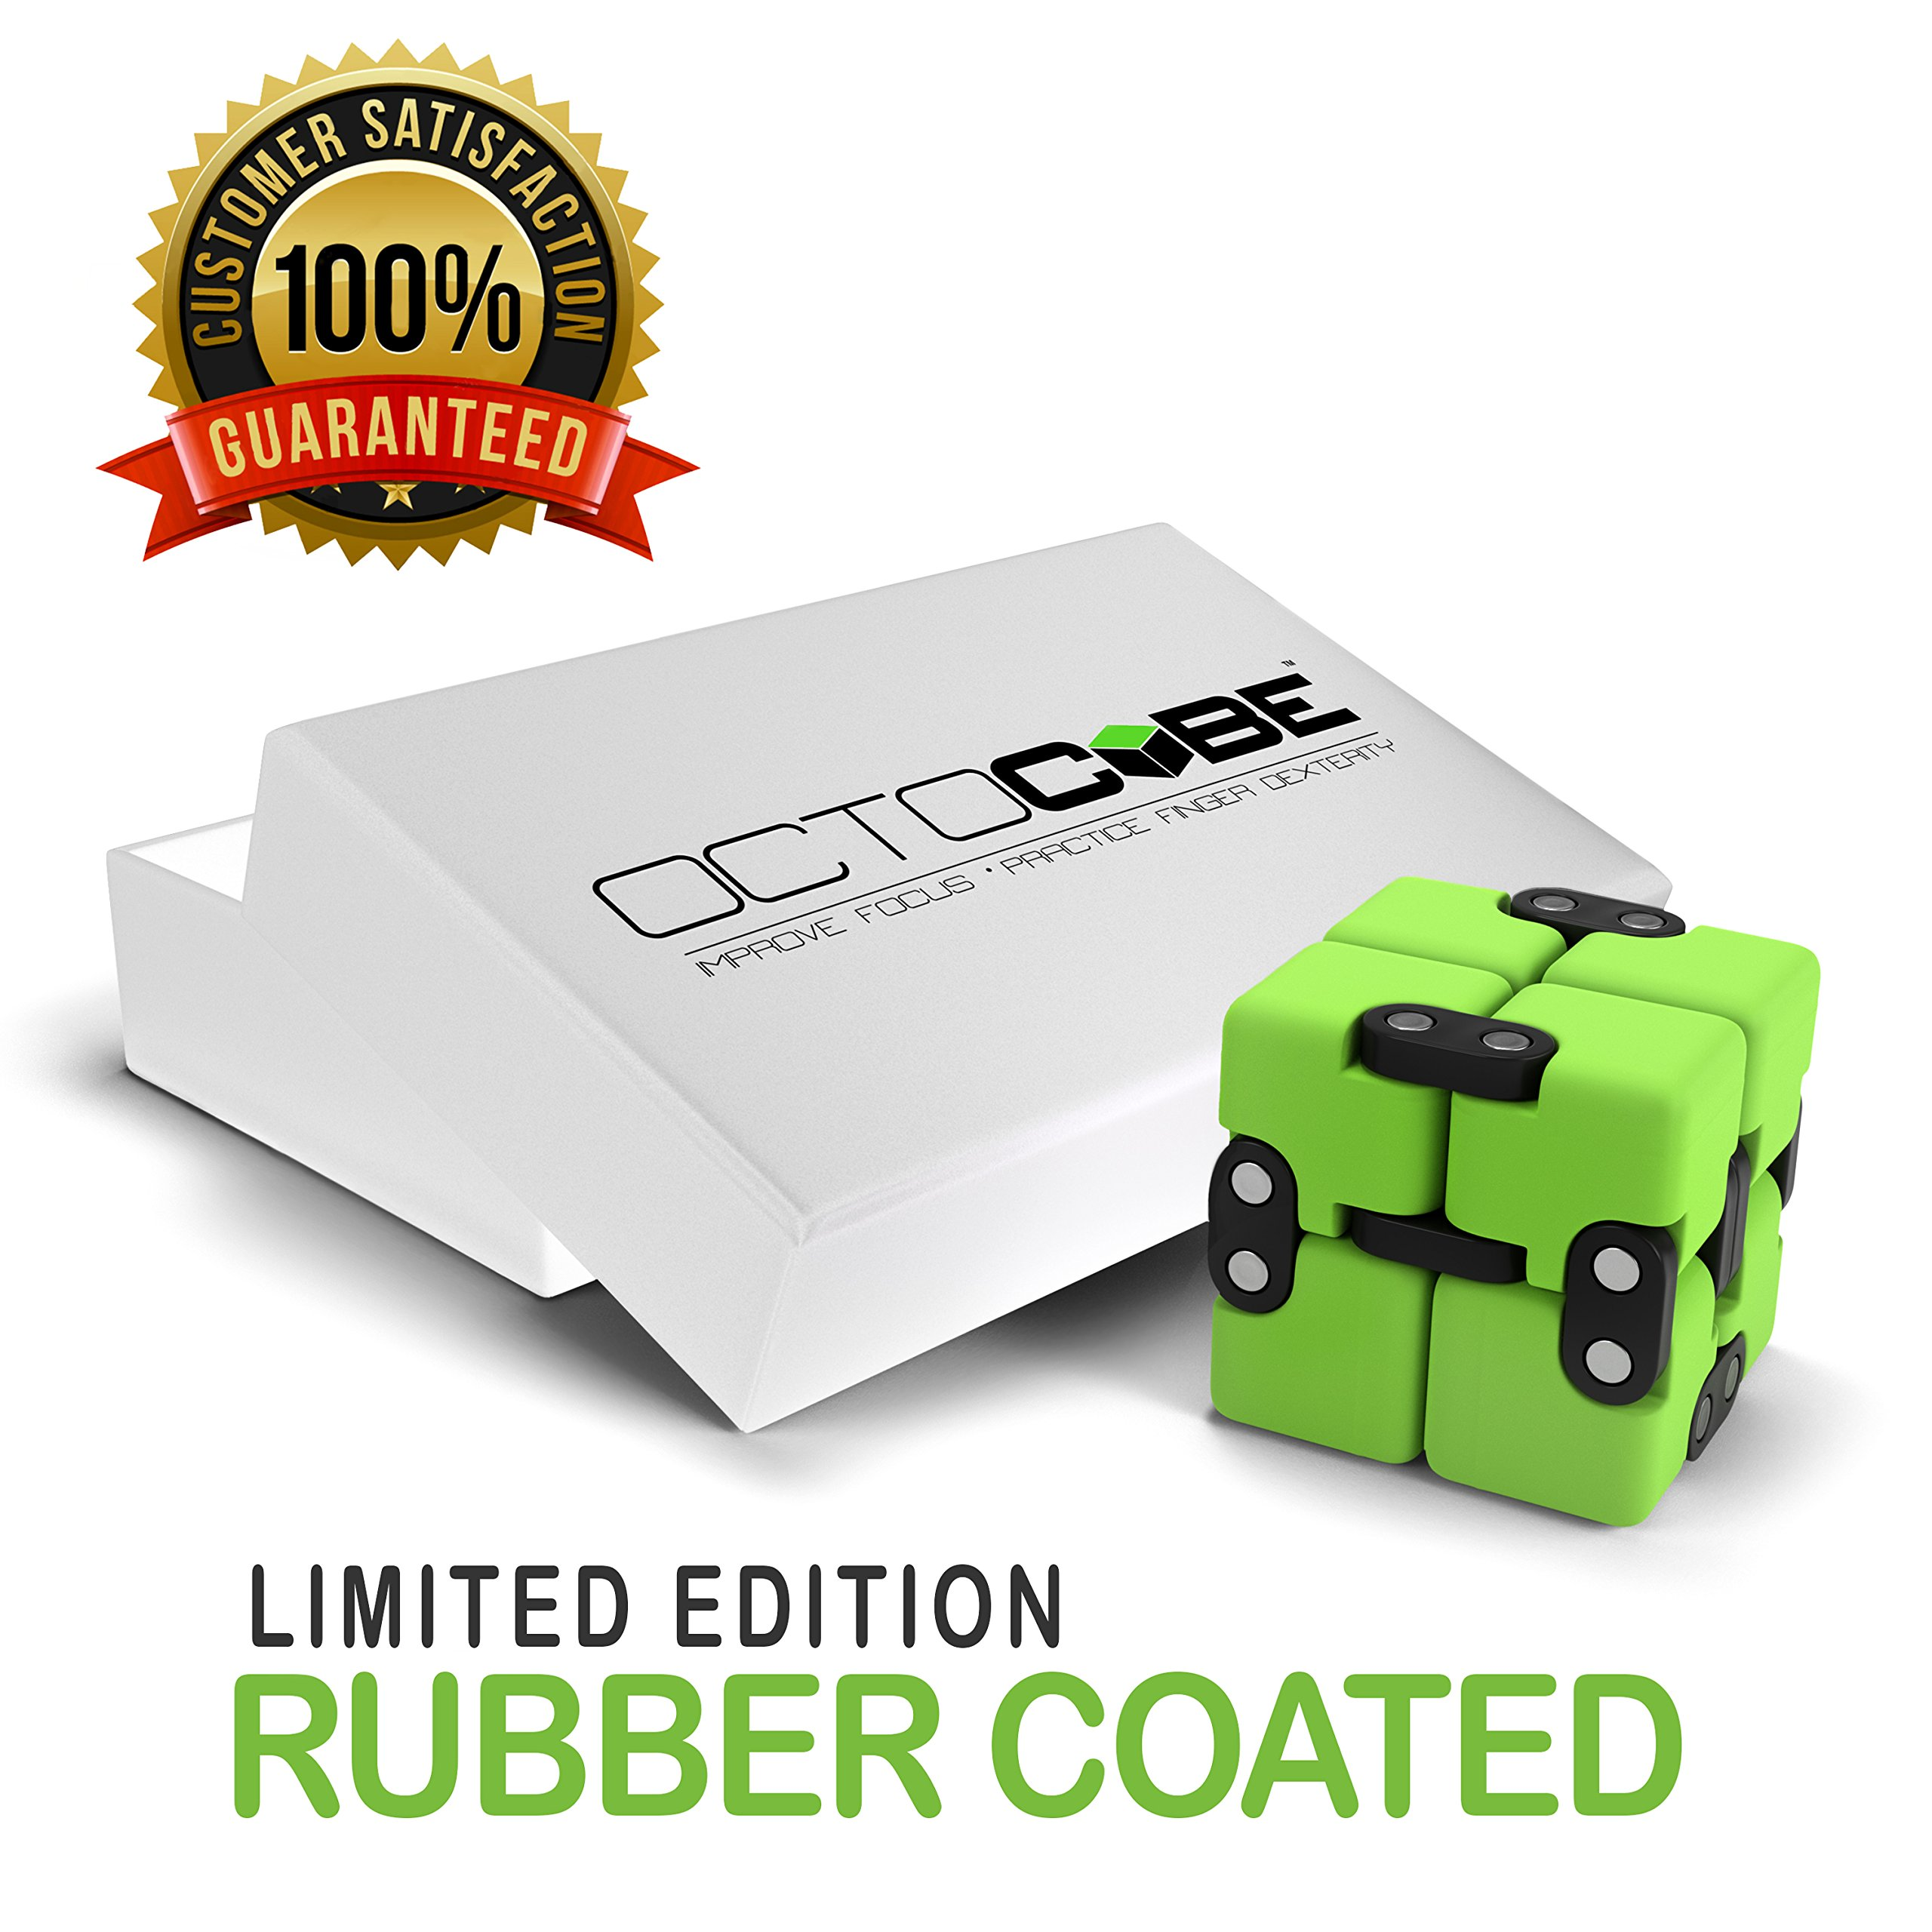 OCTOCUBE Infinity Cube Fidget Toy LIMITED EDITION - Cool Gadget for Kids, Adults - Prime Sensory Infinite Stress Relief   Prime Pressure Reduction for ADHD, Autism, Quit Smoking - GREEN RUBBER COATED